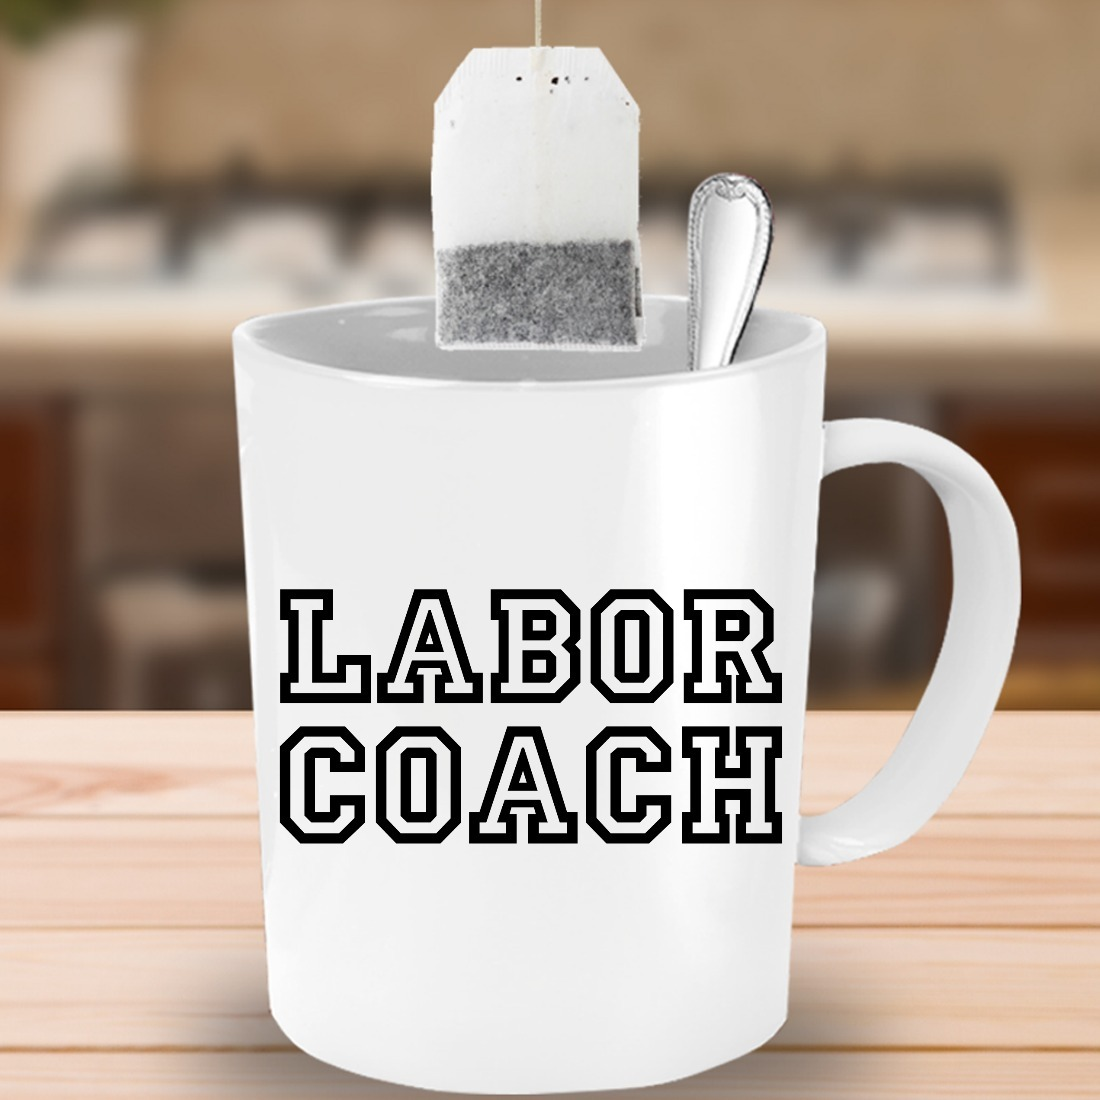 Funny Midwives Gift Coffee Cup Labor Coach Doula OB/GYN Midwifery Mug Ceramic 11